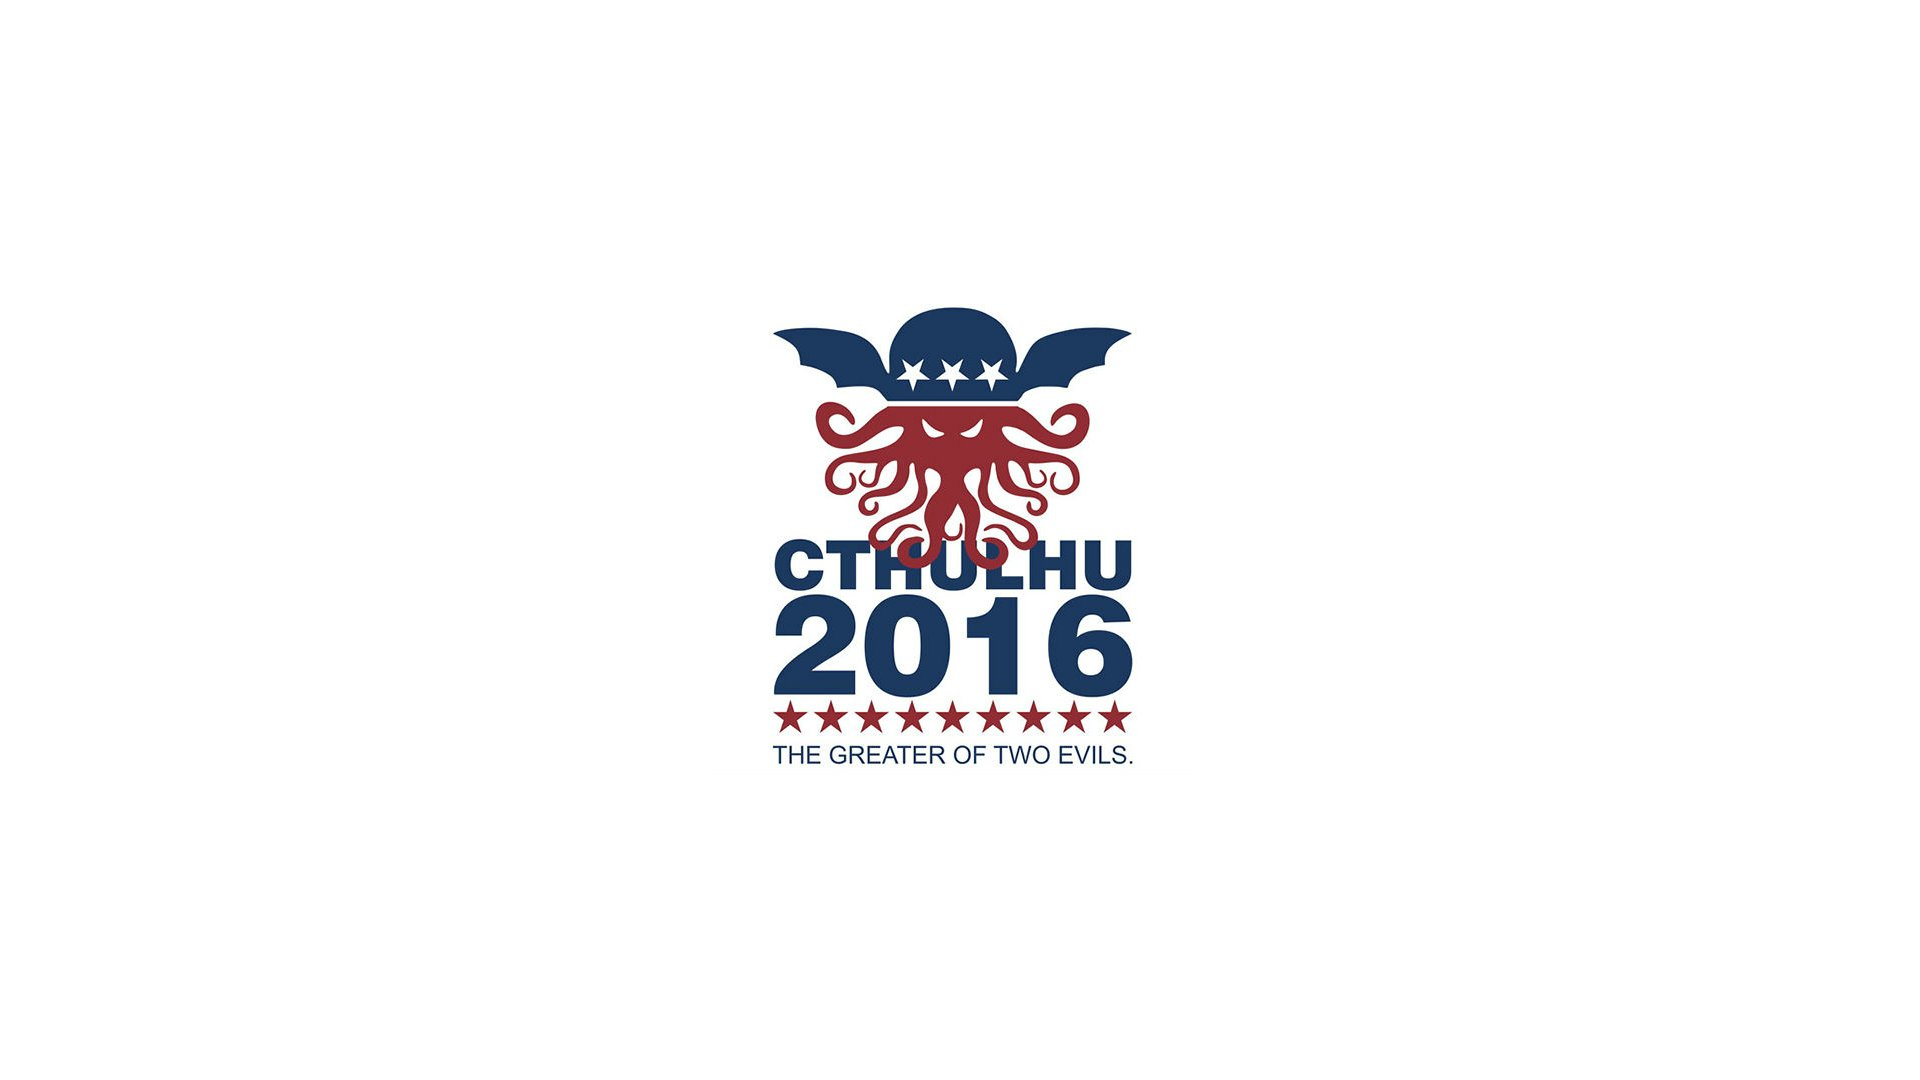 I Made a 1080p Out of Cthulhu 2016 wallpaper